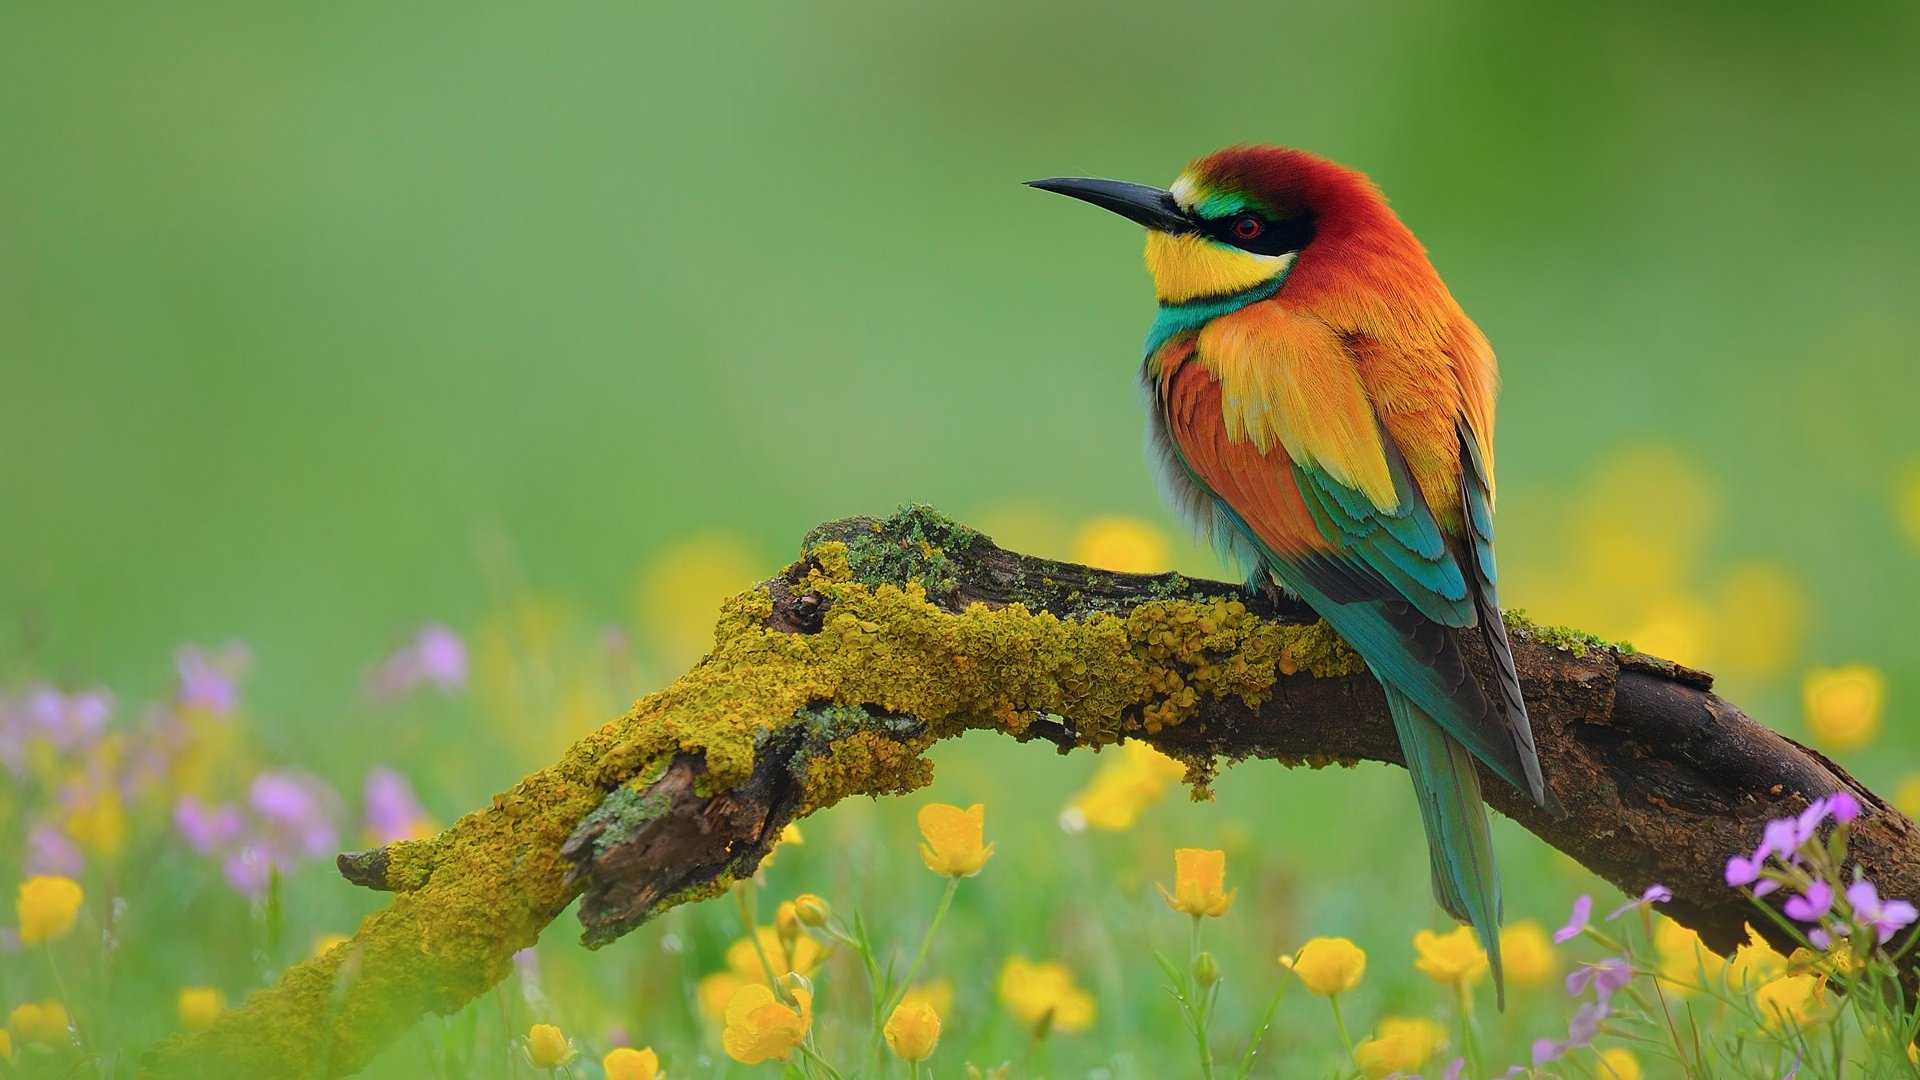 bird colorful birds wallpaper backgrounds images wallpapers 1920x1080